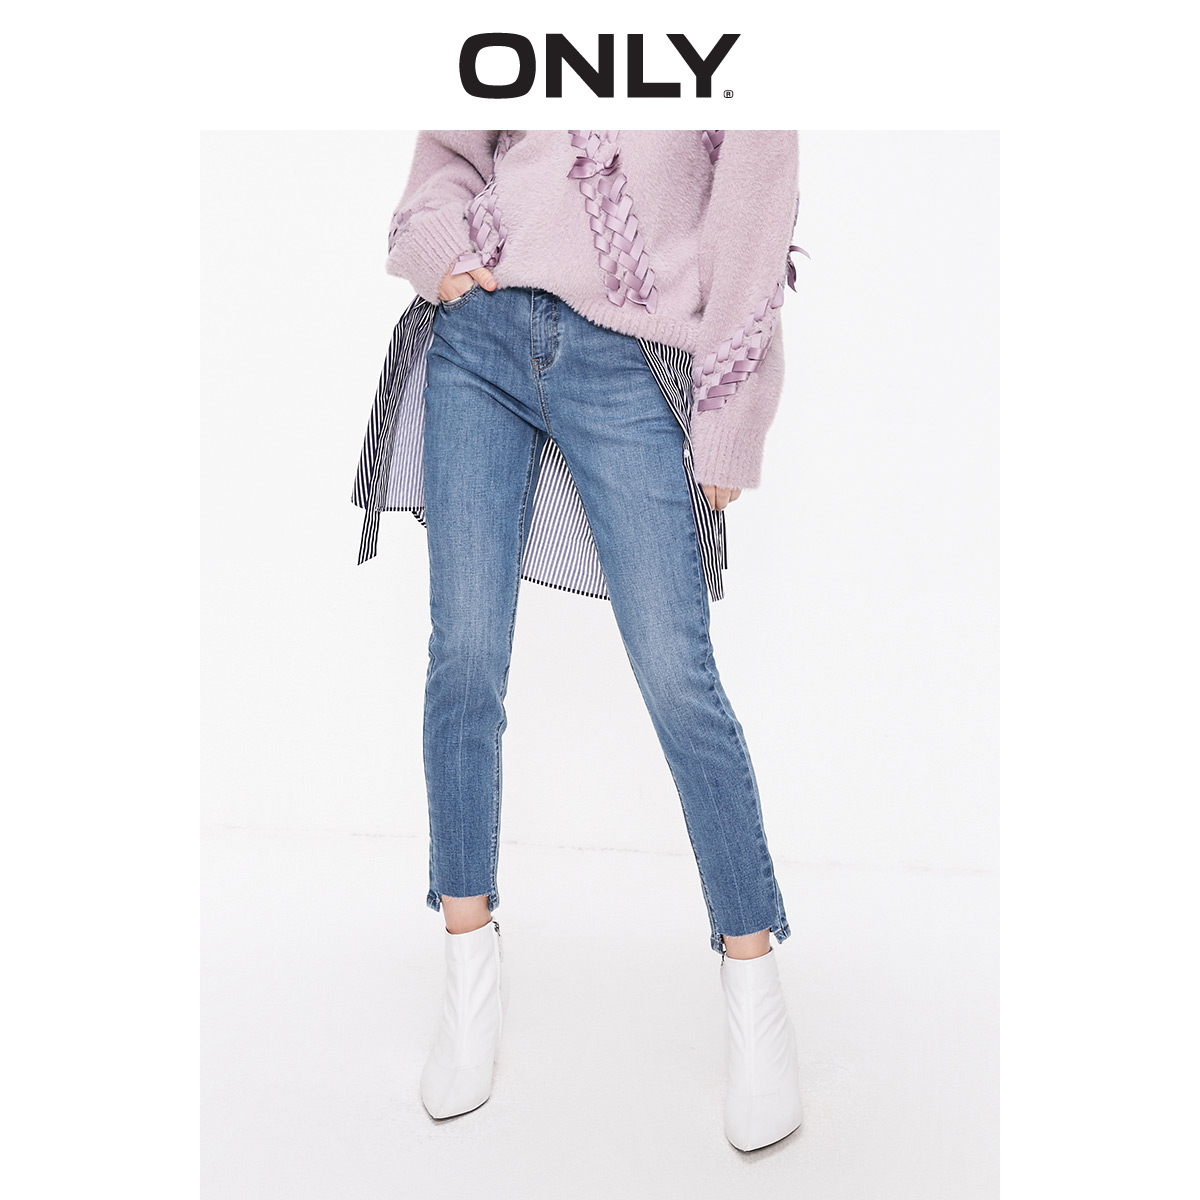 ONLY  Spring Summer New Women's Low-rise Skinny Crop Jeans |119149527